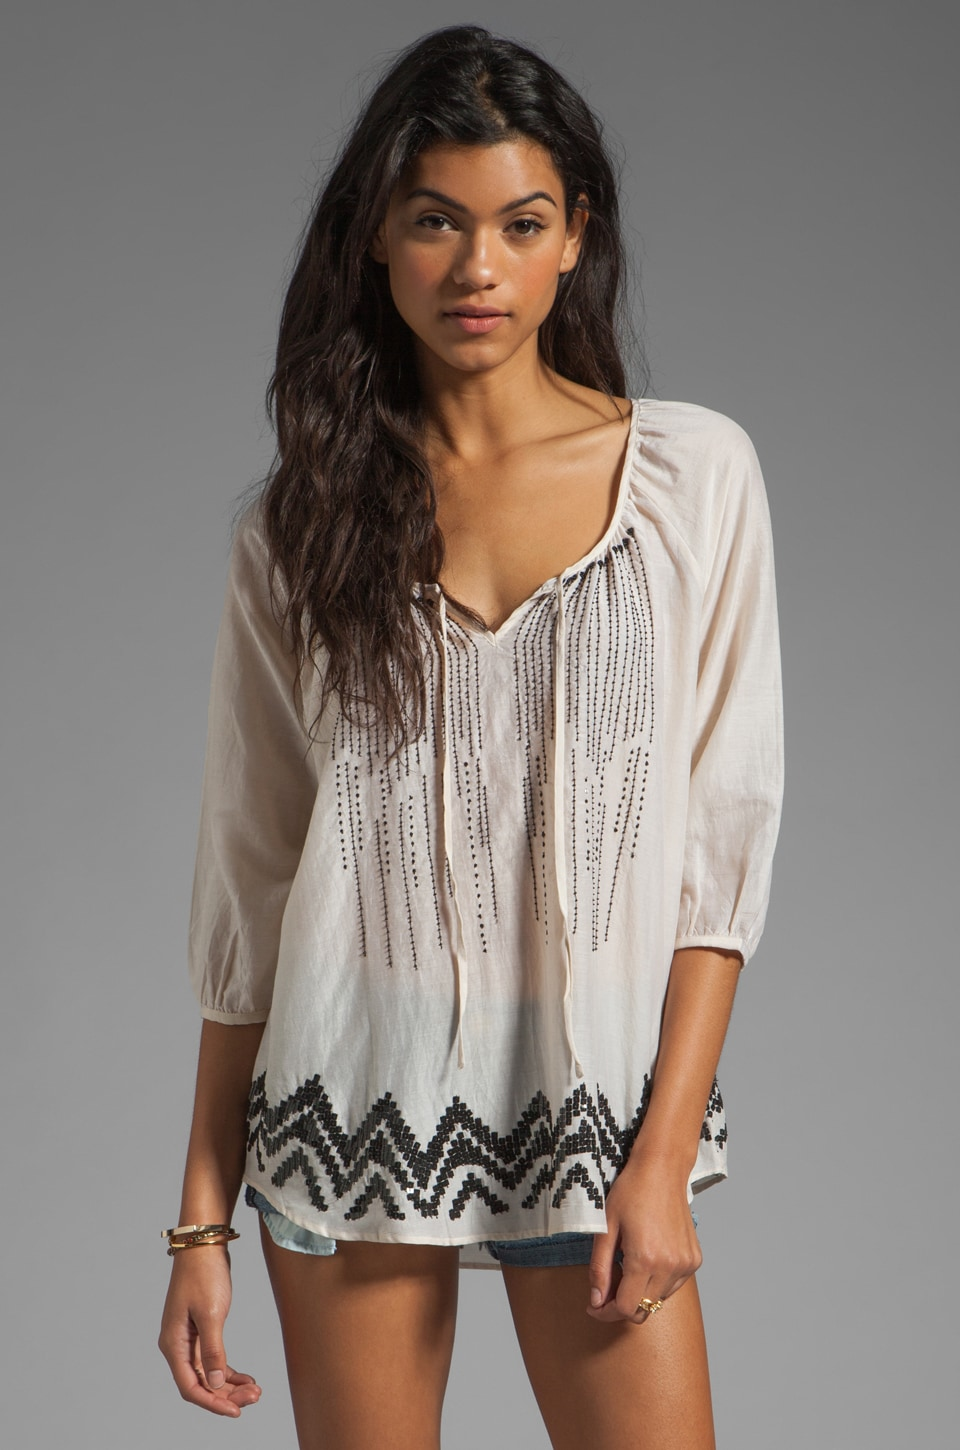 HEARTLOOM Tompkins Top in Stone